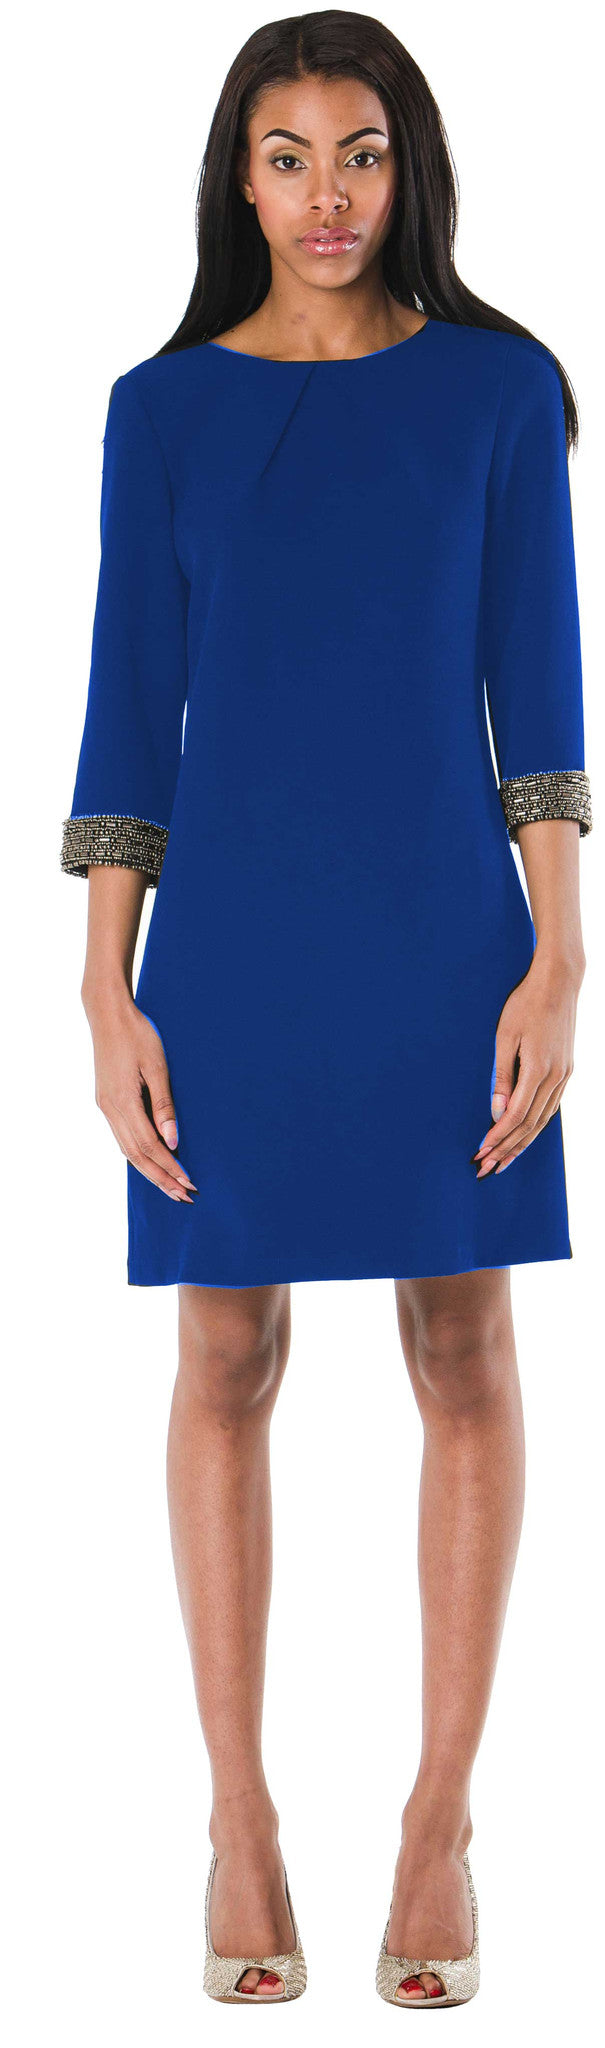 Lafayette Shift Dress/ Royal Blue